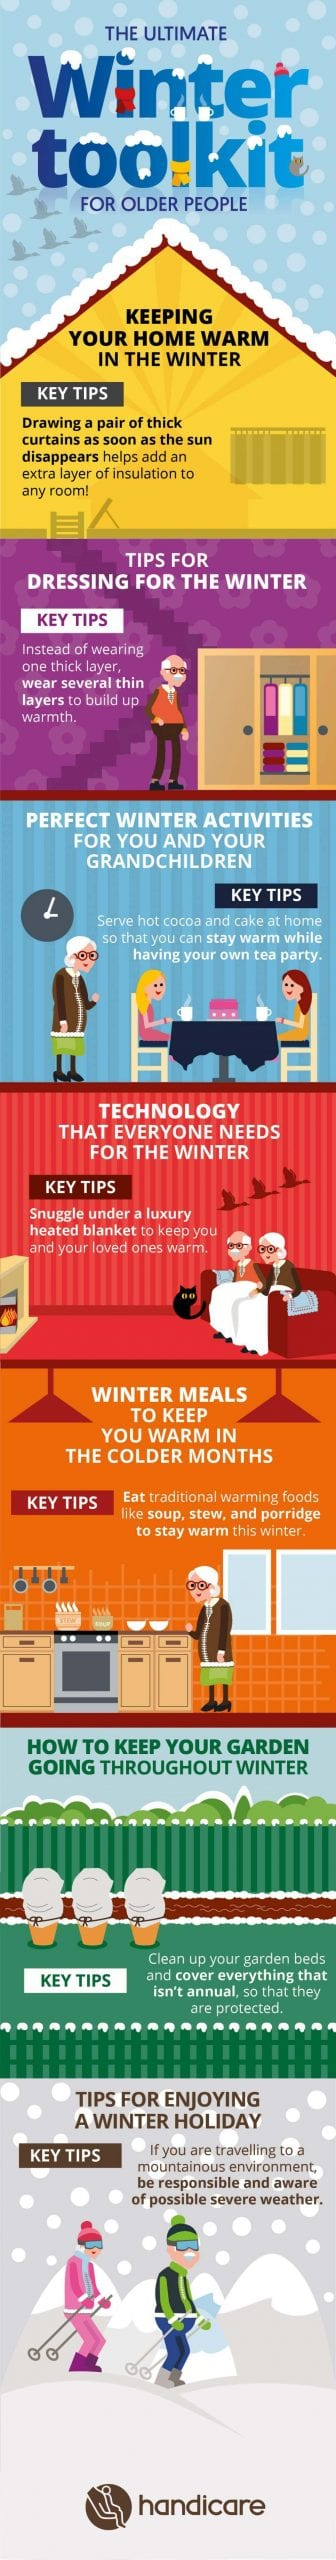 Winter-Toolkit-for-Older-People